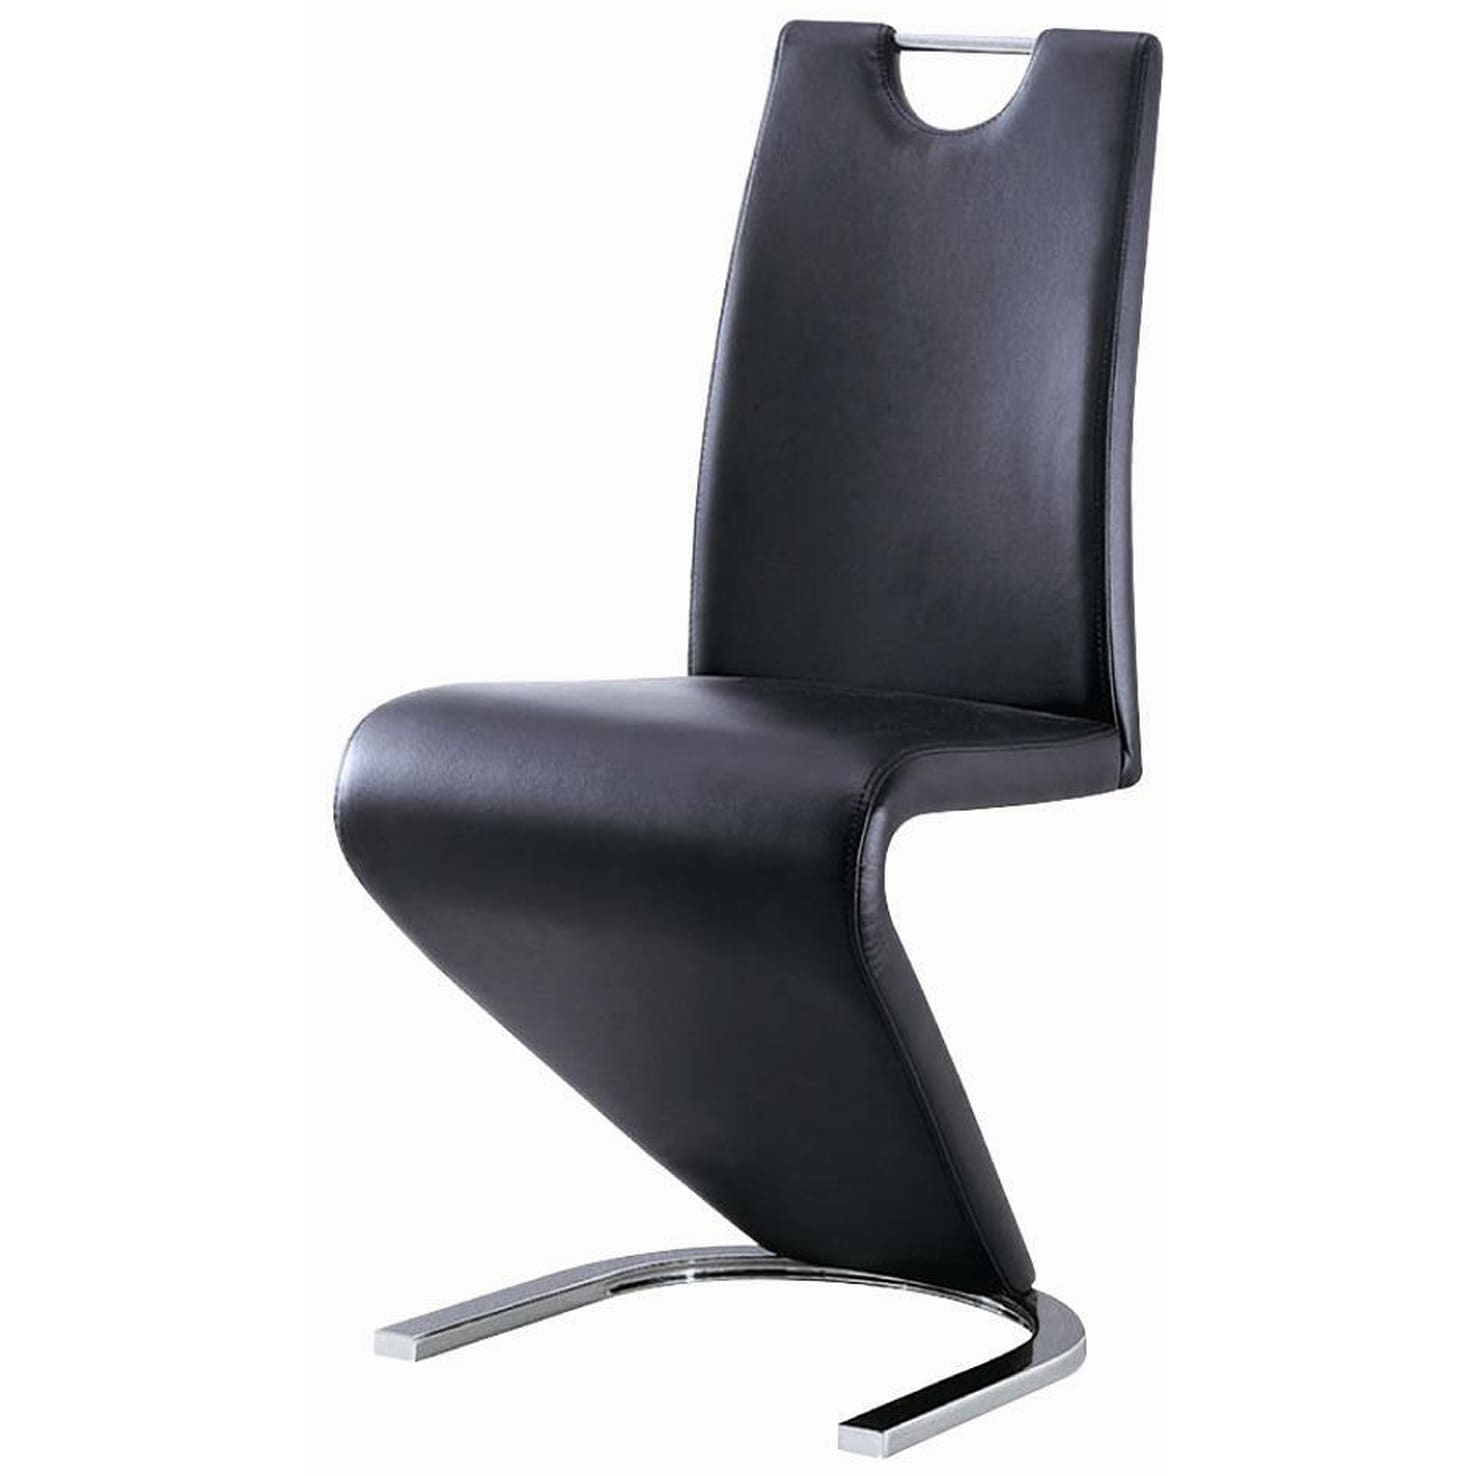 Shop black modern z chair on sale free shipping today overstock com 9963807